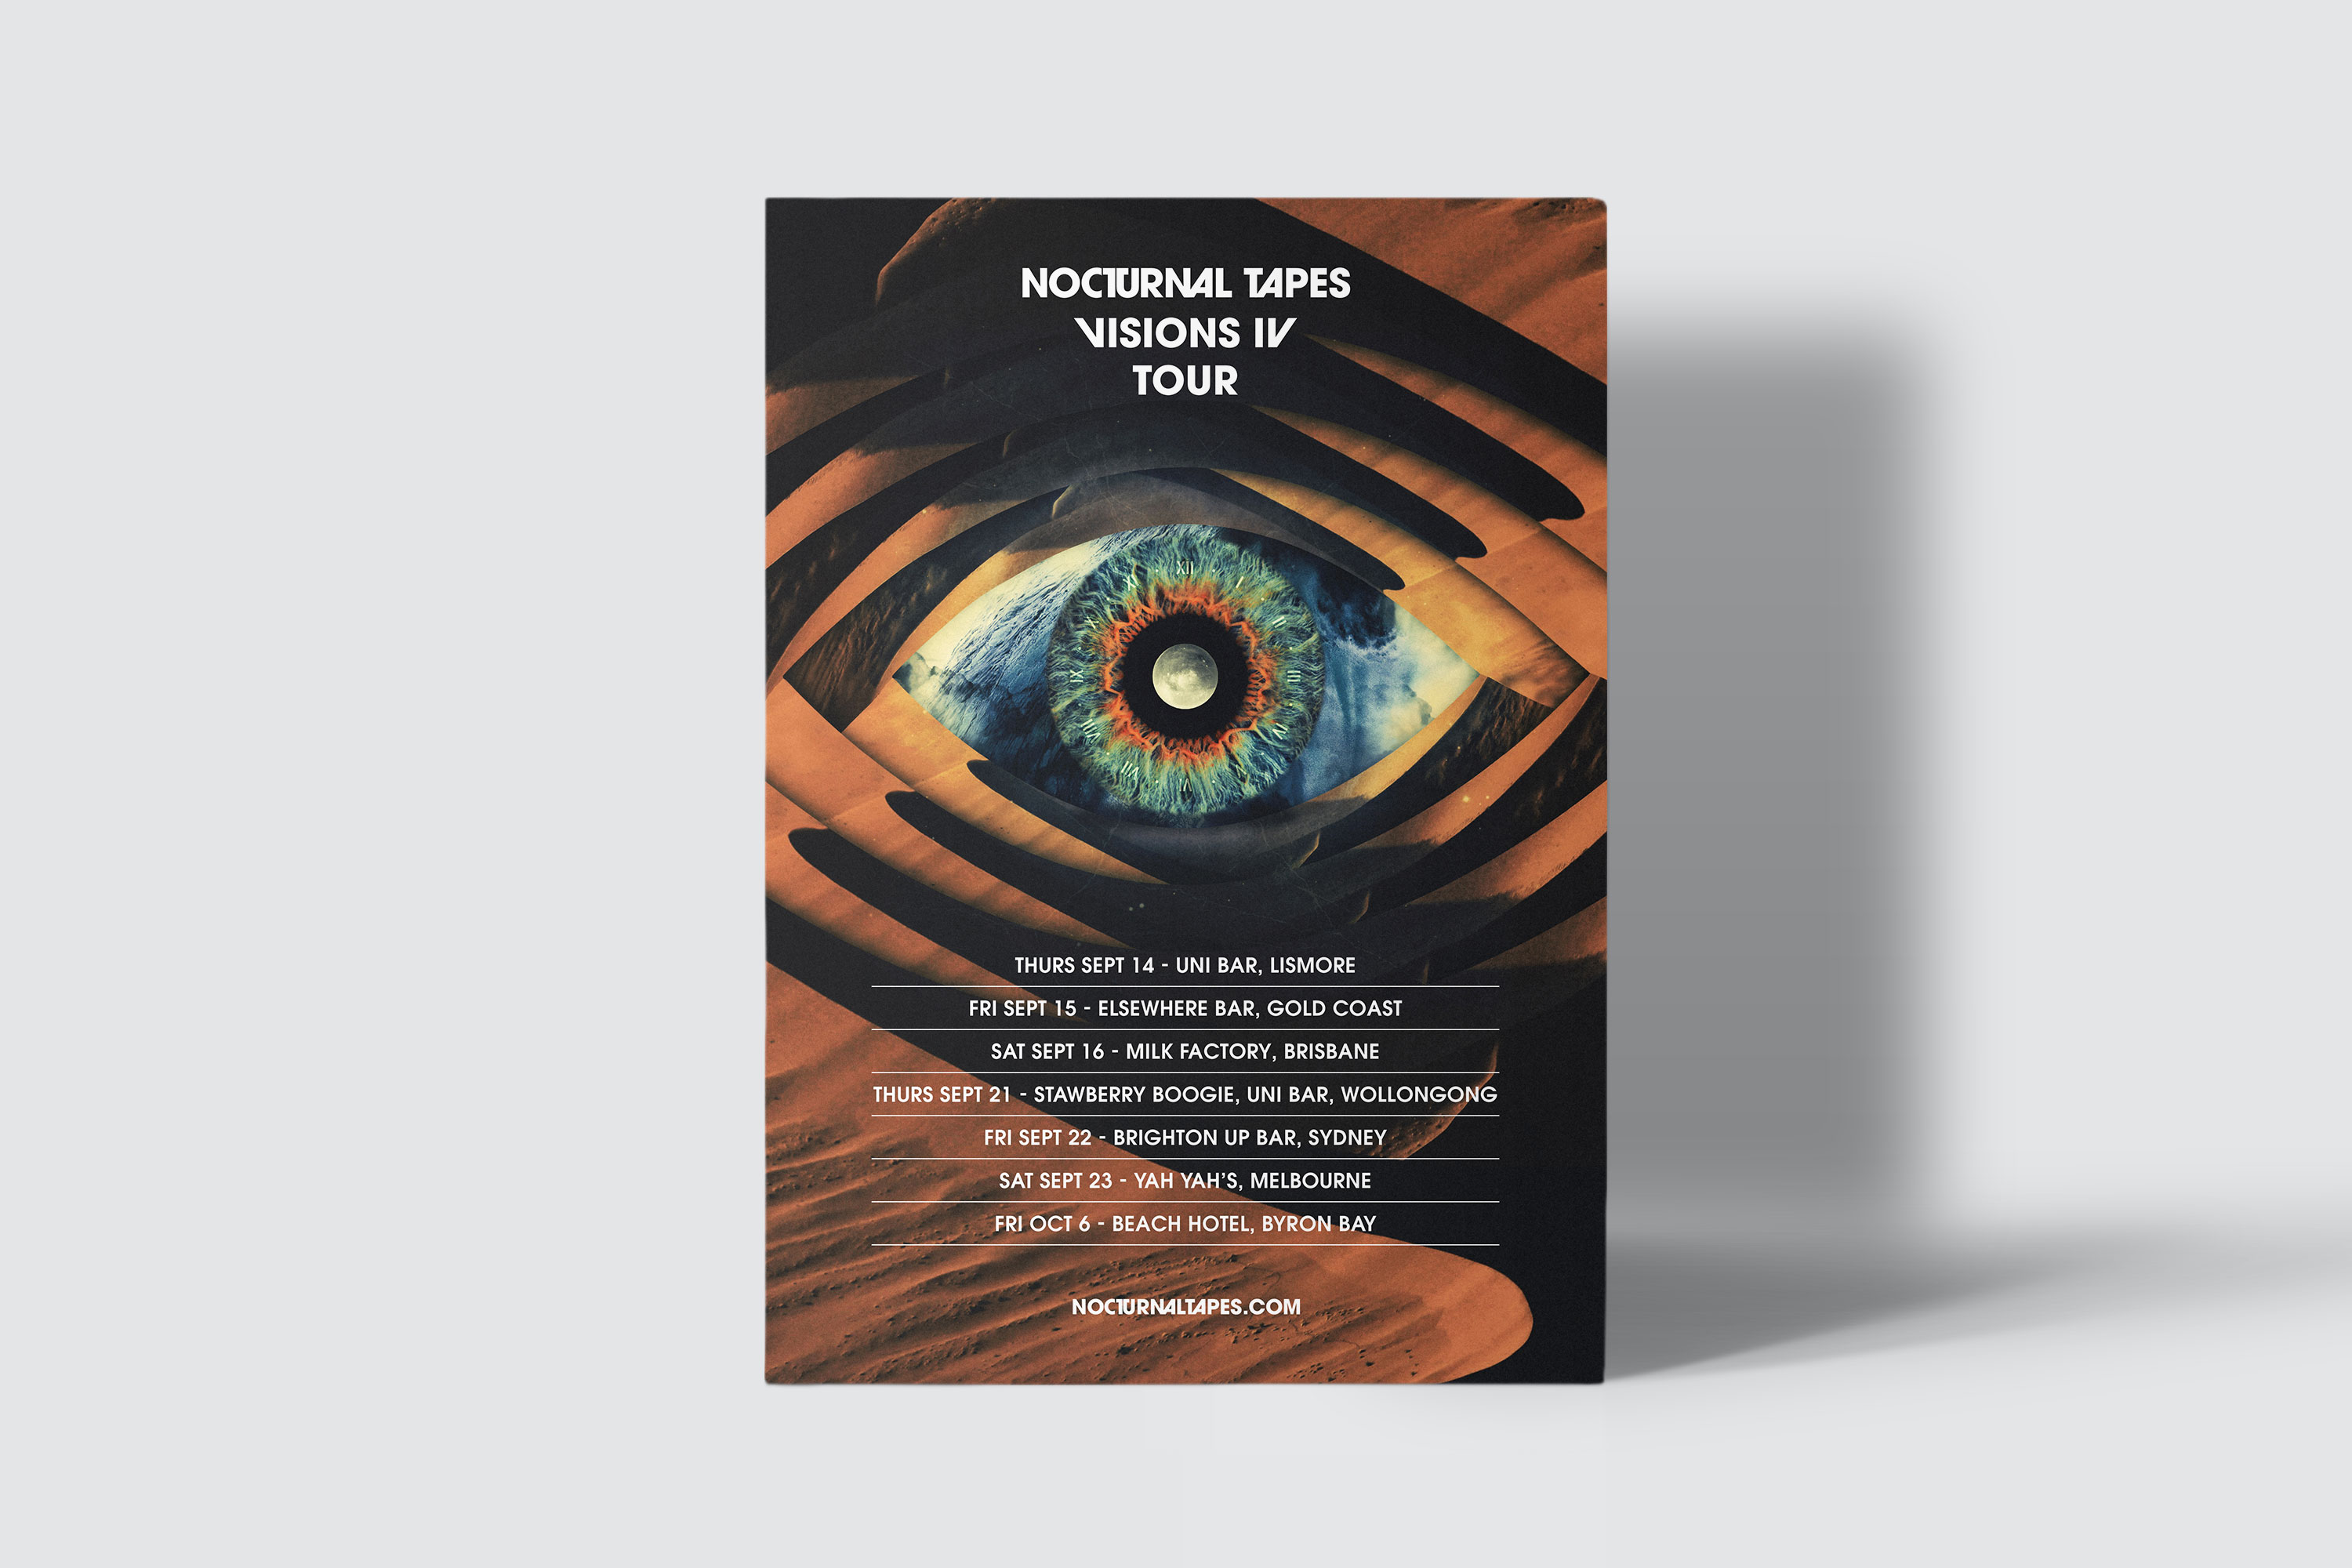 Nocturnal-Tapes-Poster